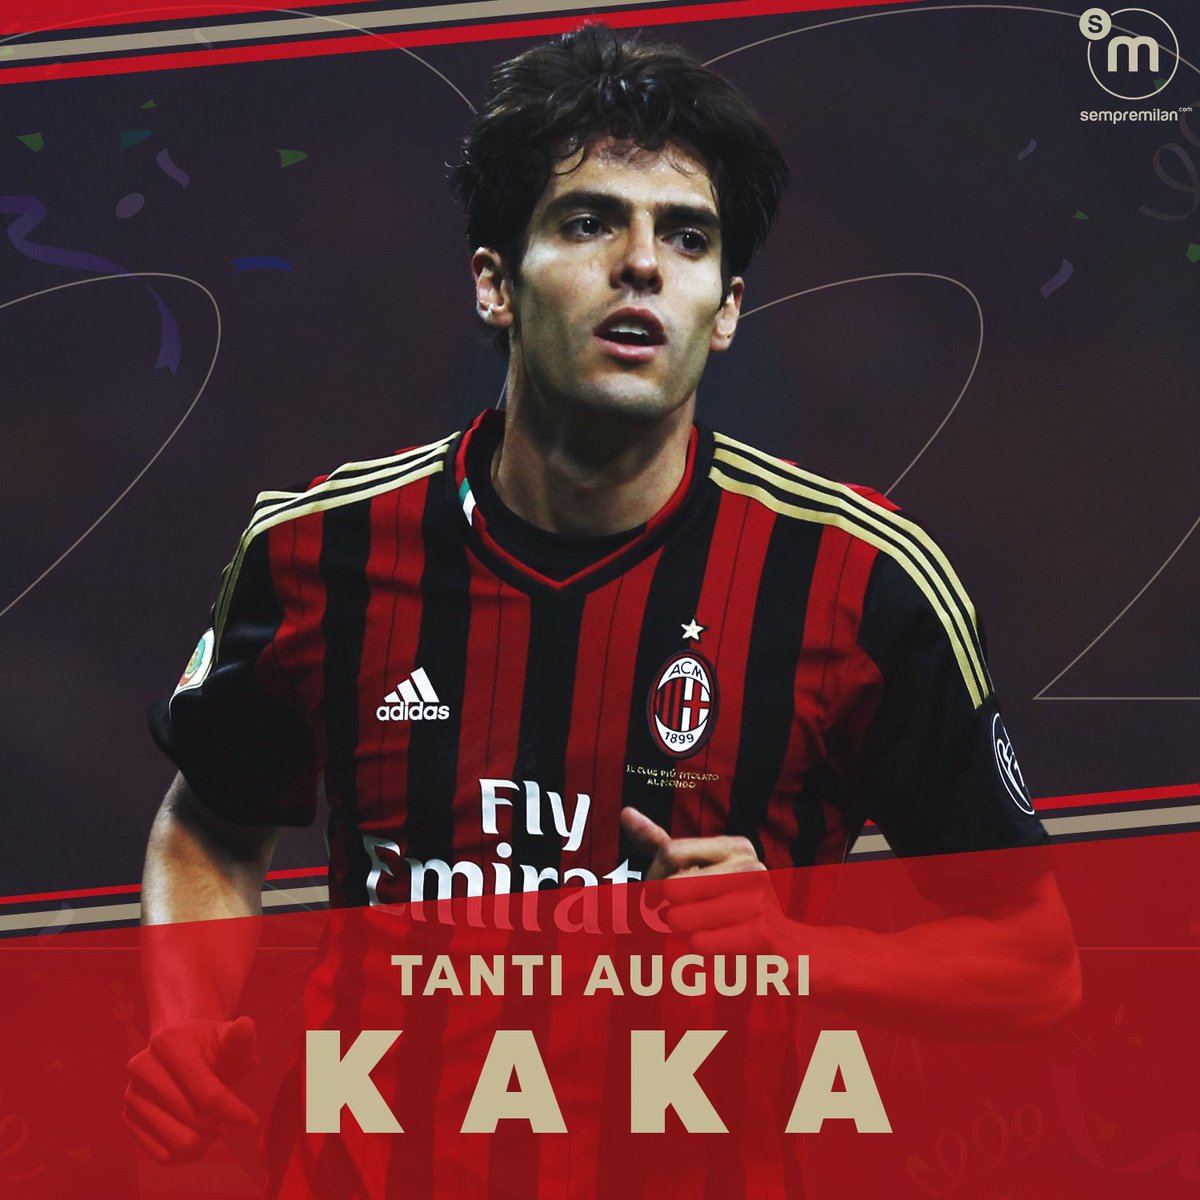 🎂 Happy 39th birthday to #ACMilan Hall of Fame member Ricardo @KAKA!   ☑️ 307 Appearances ⚽️ 104 Goals 🤝 68 Assists 🏆 5 Major trophies 🥇 Ballon d'Or winner  🇧🇷 Legend. #AuguriKaka 🔴⚫ https://t.co/BX3udZRK3v